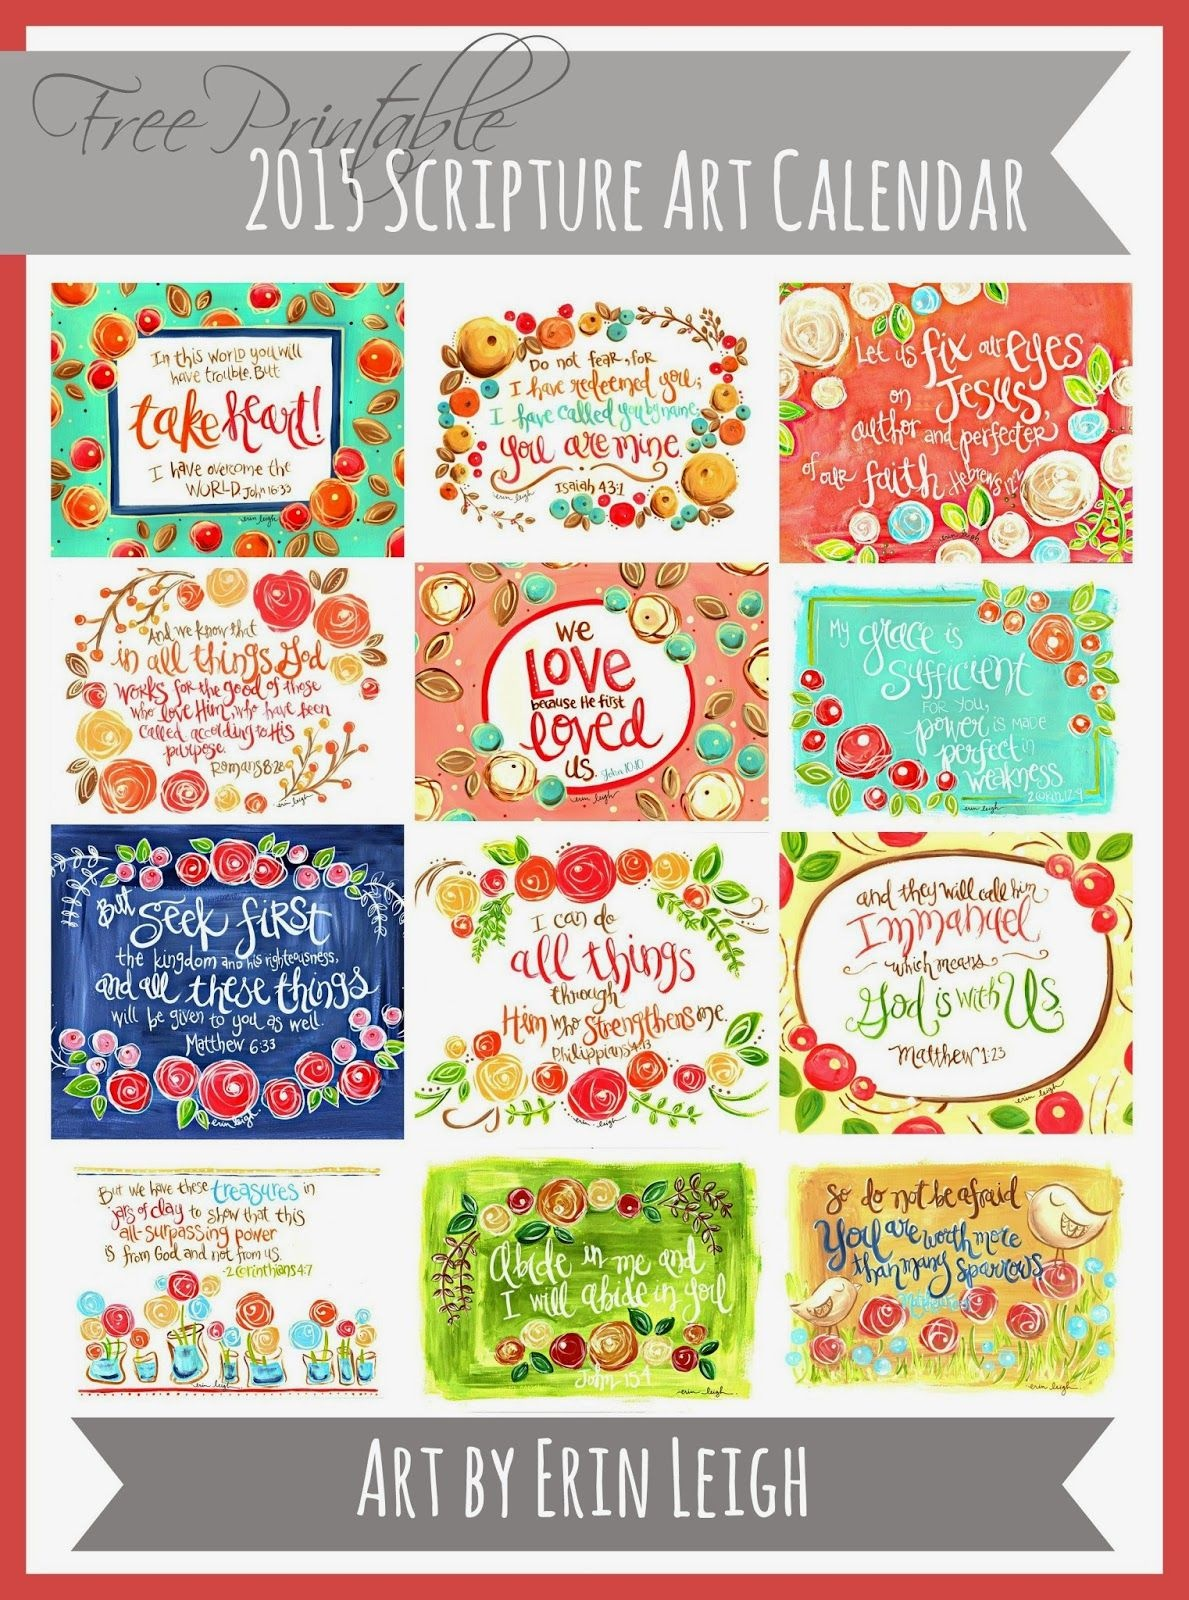 50+ 2015 Free Printable Calendars   Lolly Jane   Features - Free Printable Christian Art